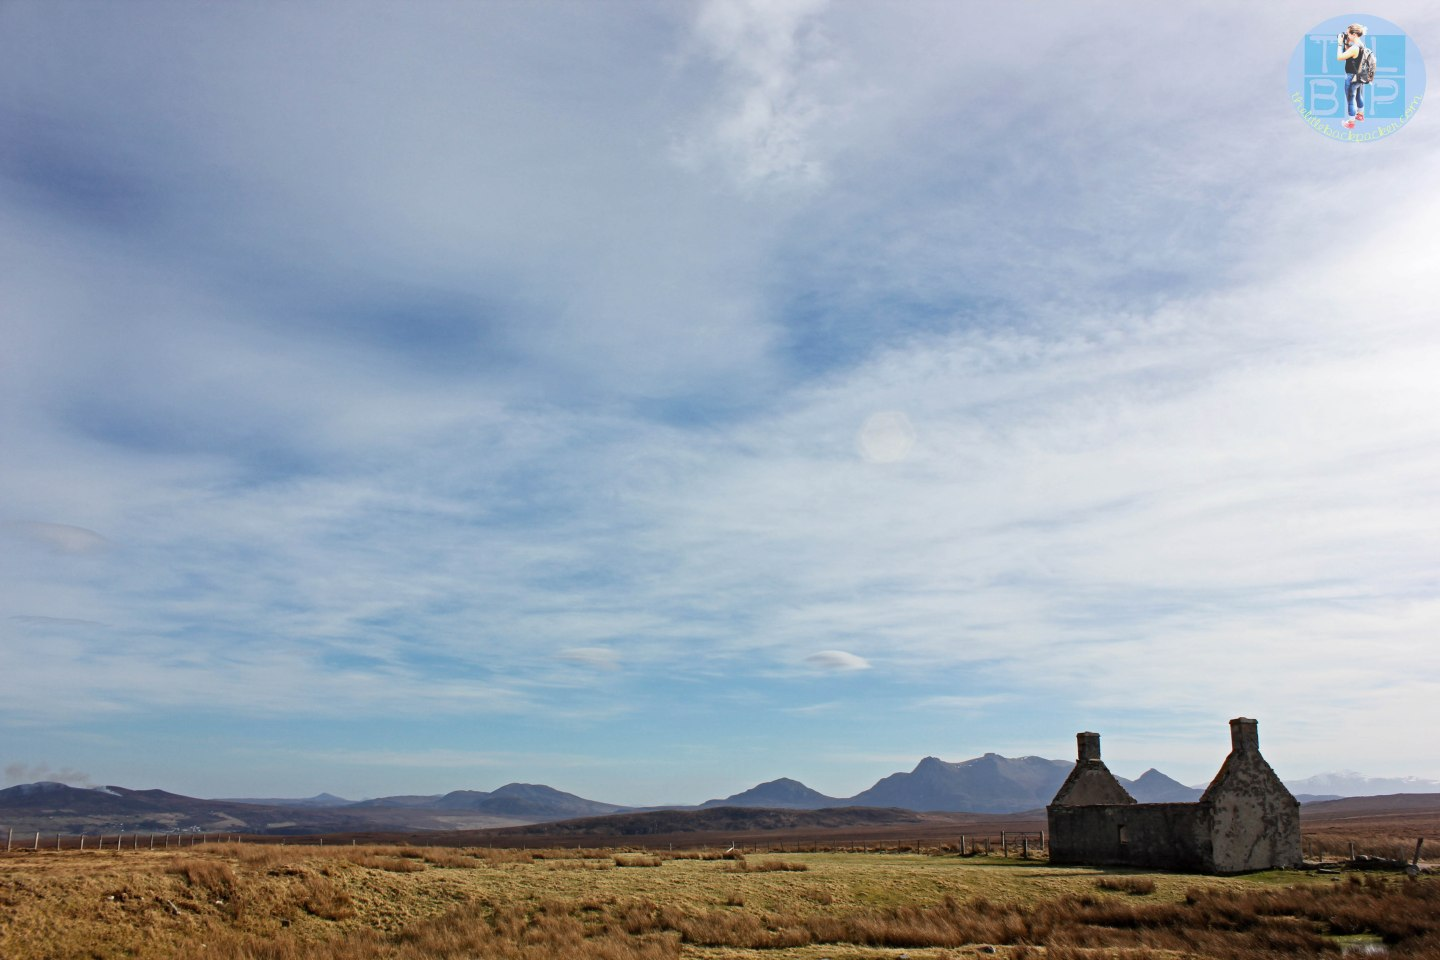 A Scottish Roadtrip – Route, Cost, Highlights And More